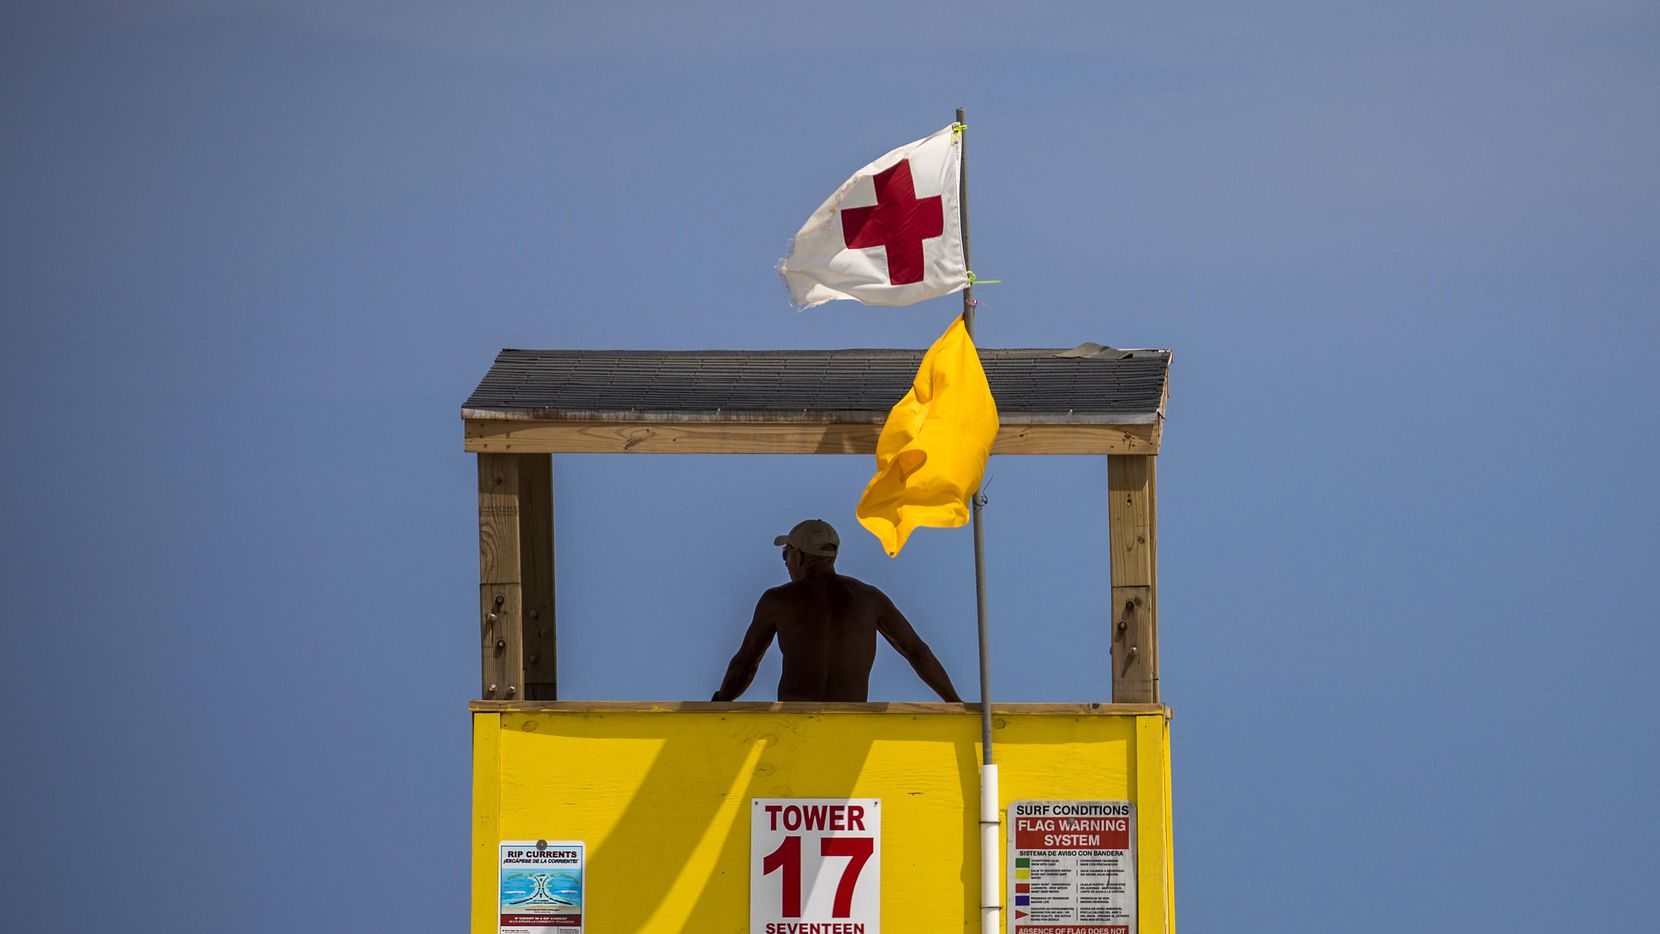 A Port Aransas Beach Guard looks out from a tower in Port Aransas, Texas.